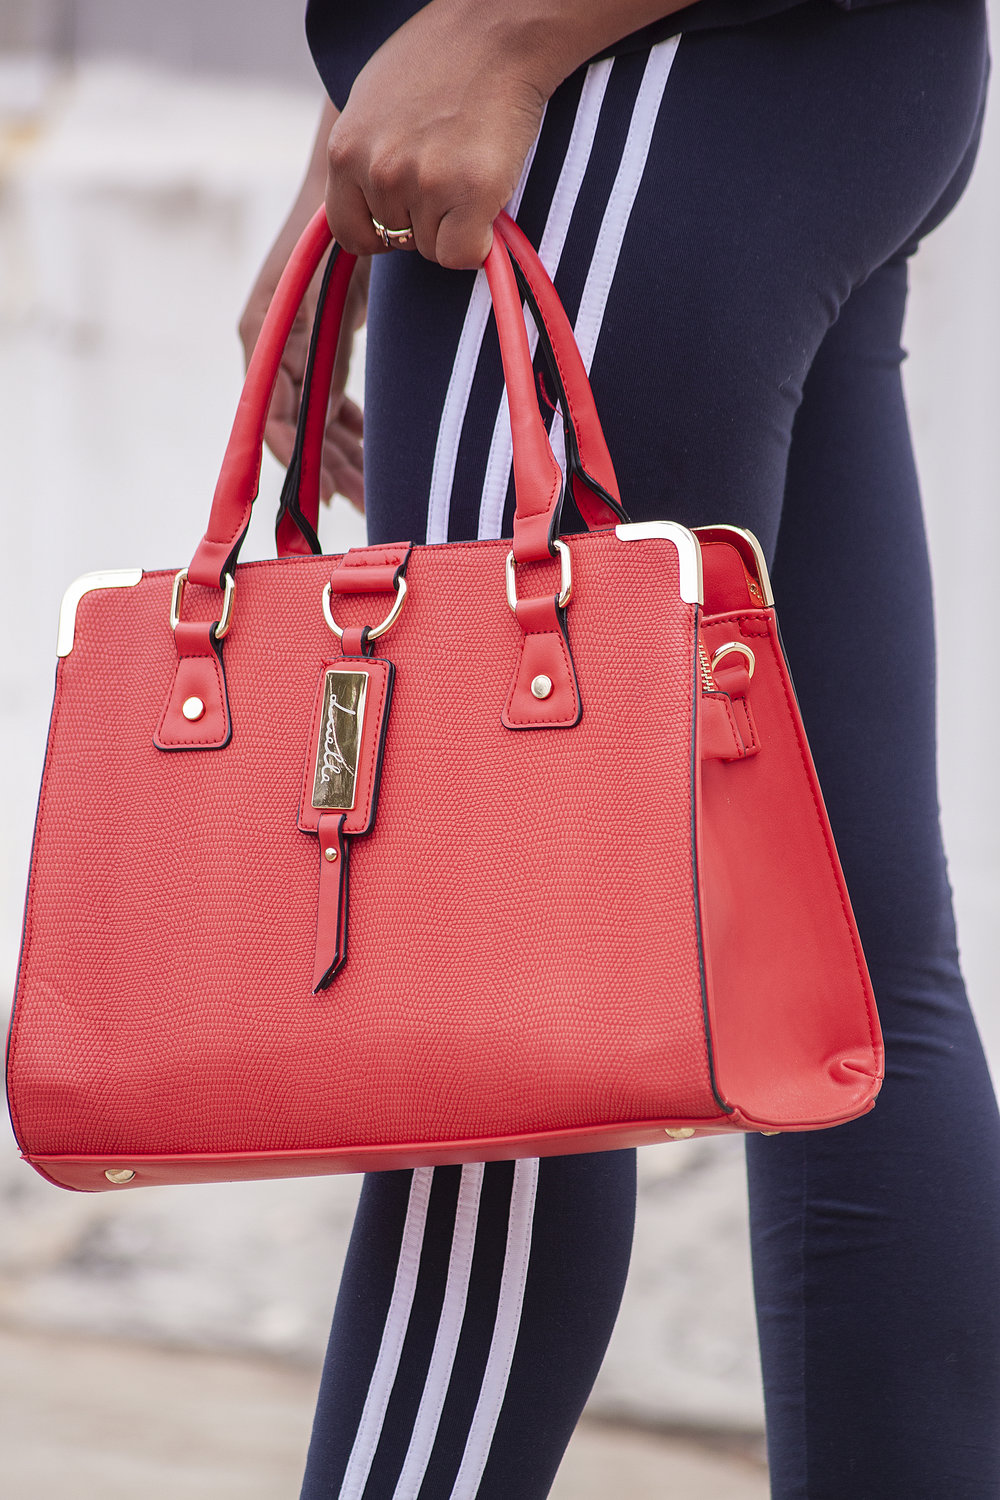 A good #Handbag can elevate your style even in yoga pants.